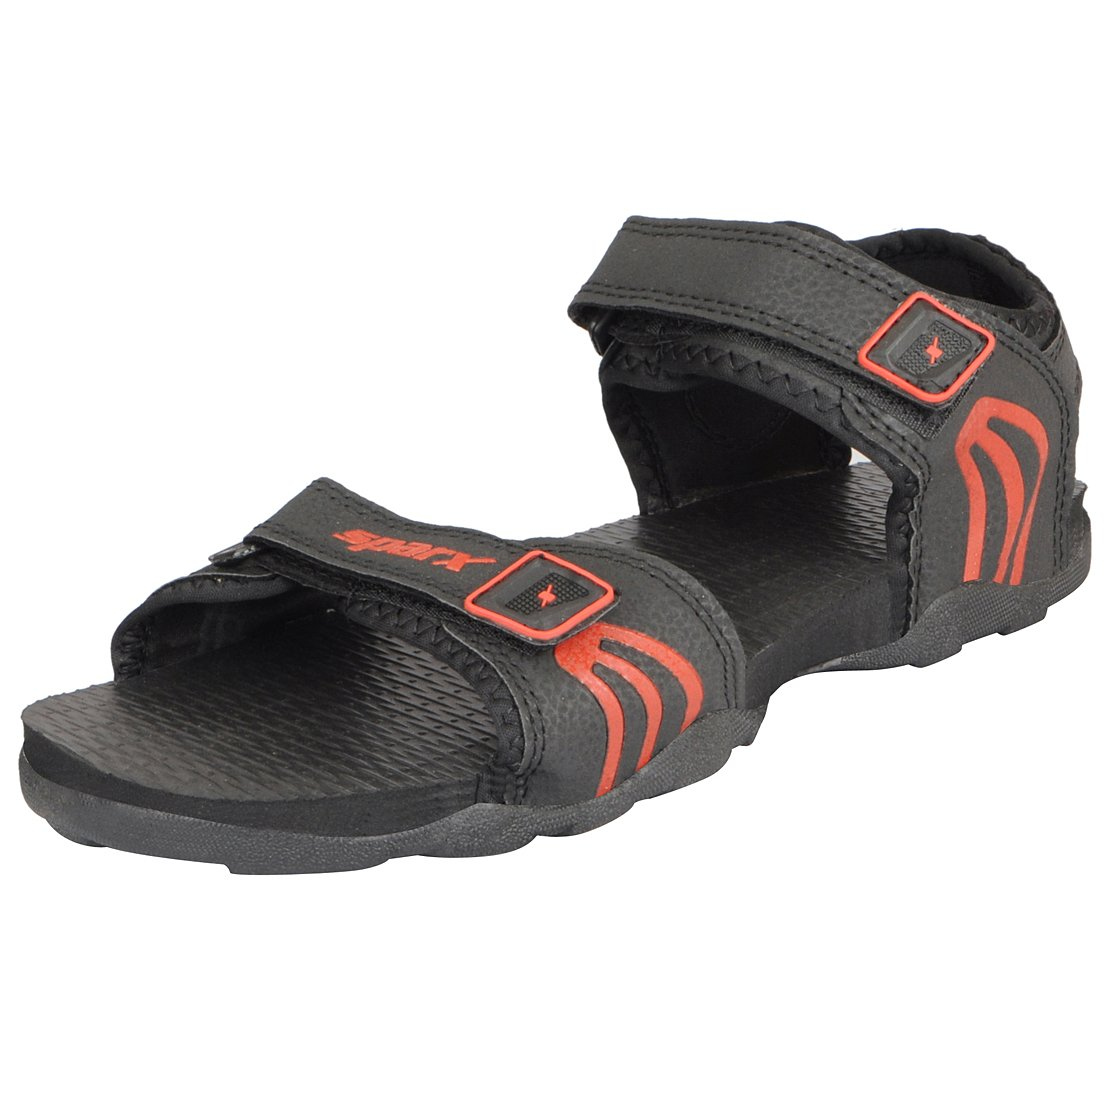 72ddb9a75b673 Sparx Men's Athletic & Outdoor Sandals